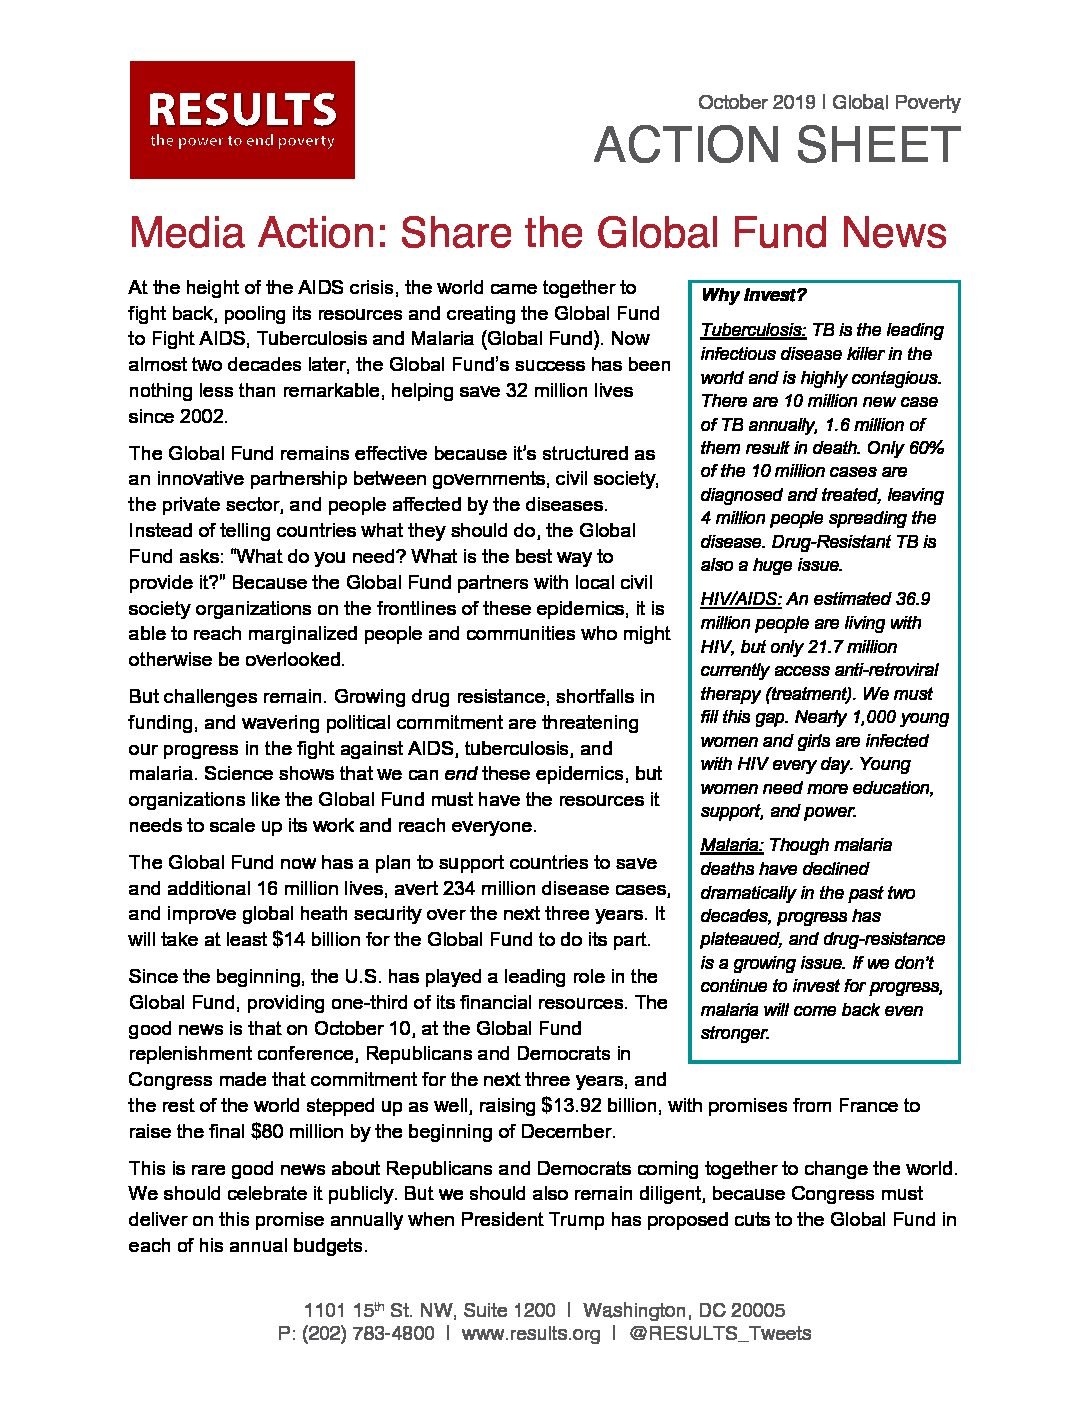 October 2019 Global Poverty Action: Media - Global Fund Replenishment Success